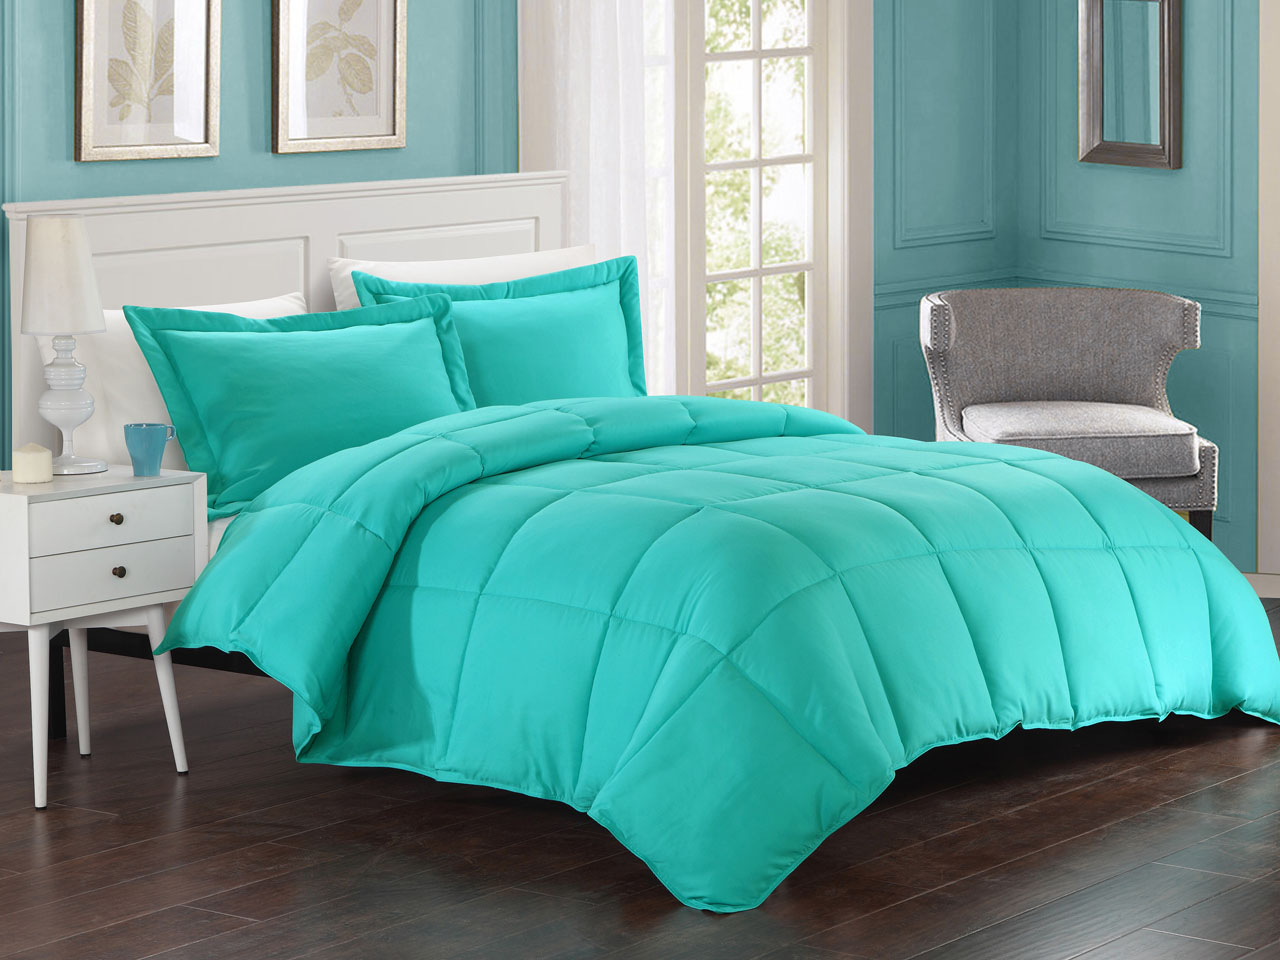 down alternative comforter king Turquoise Down Alternative Comforter Set down alternative comforter king